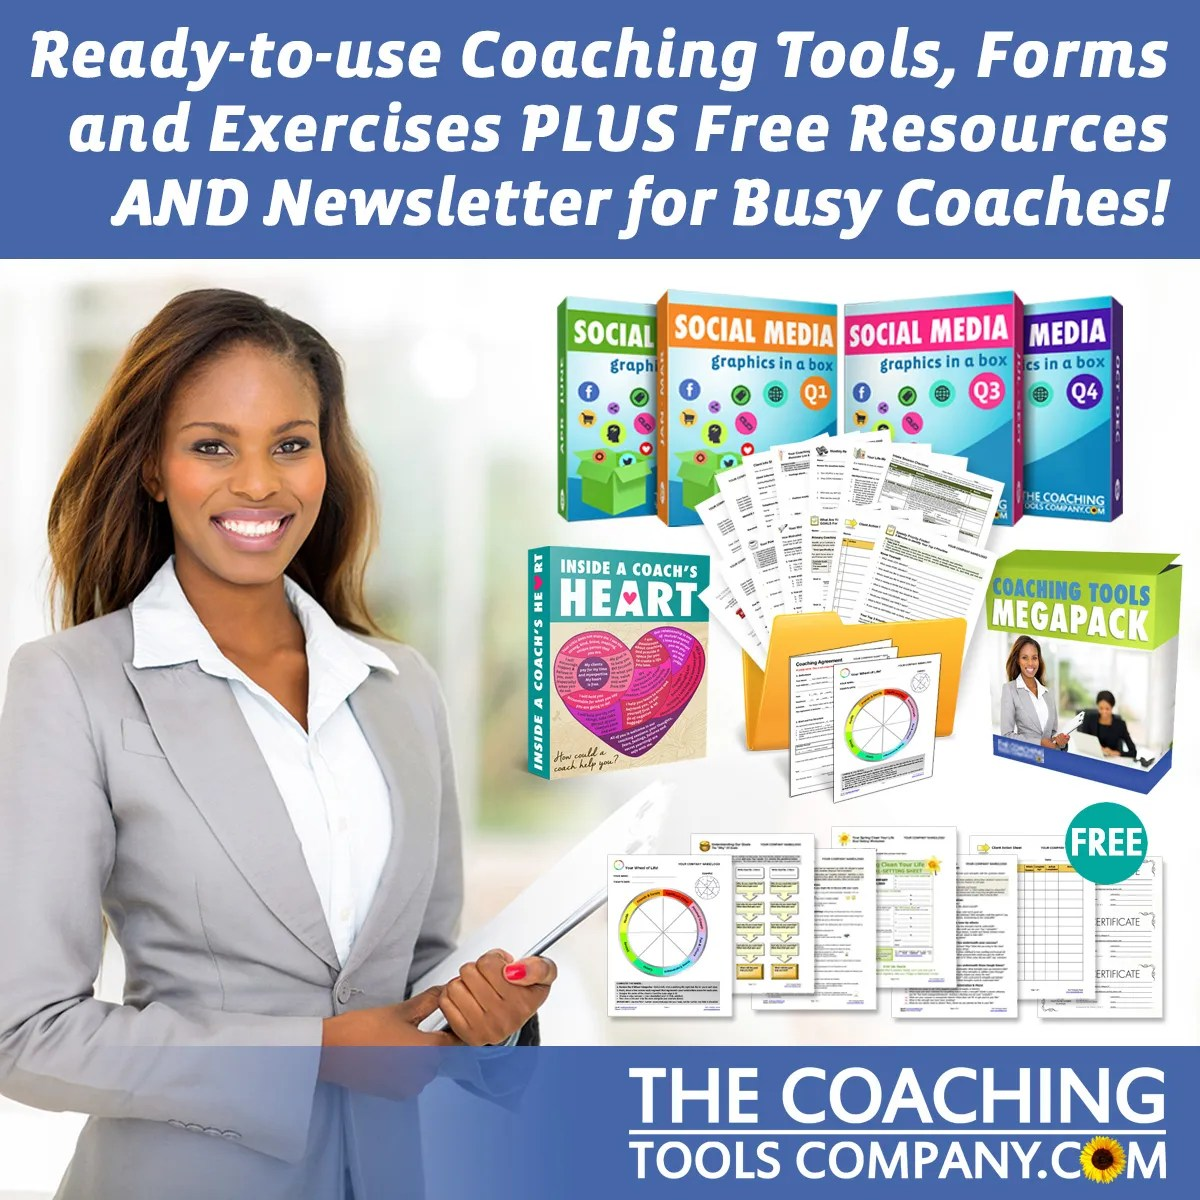 Coaching Tools Forms Templates Amp Exercises